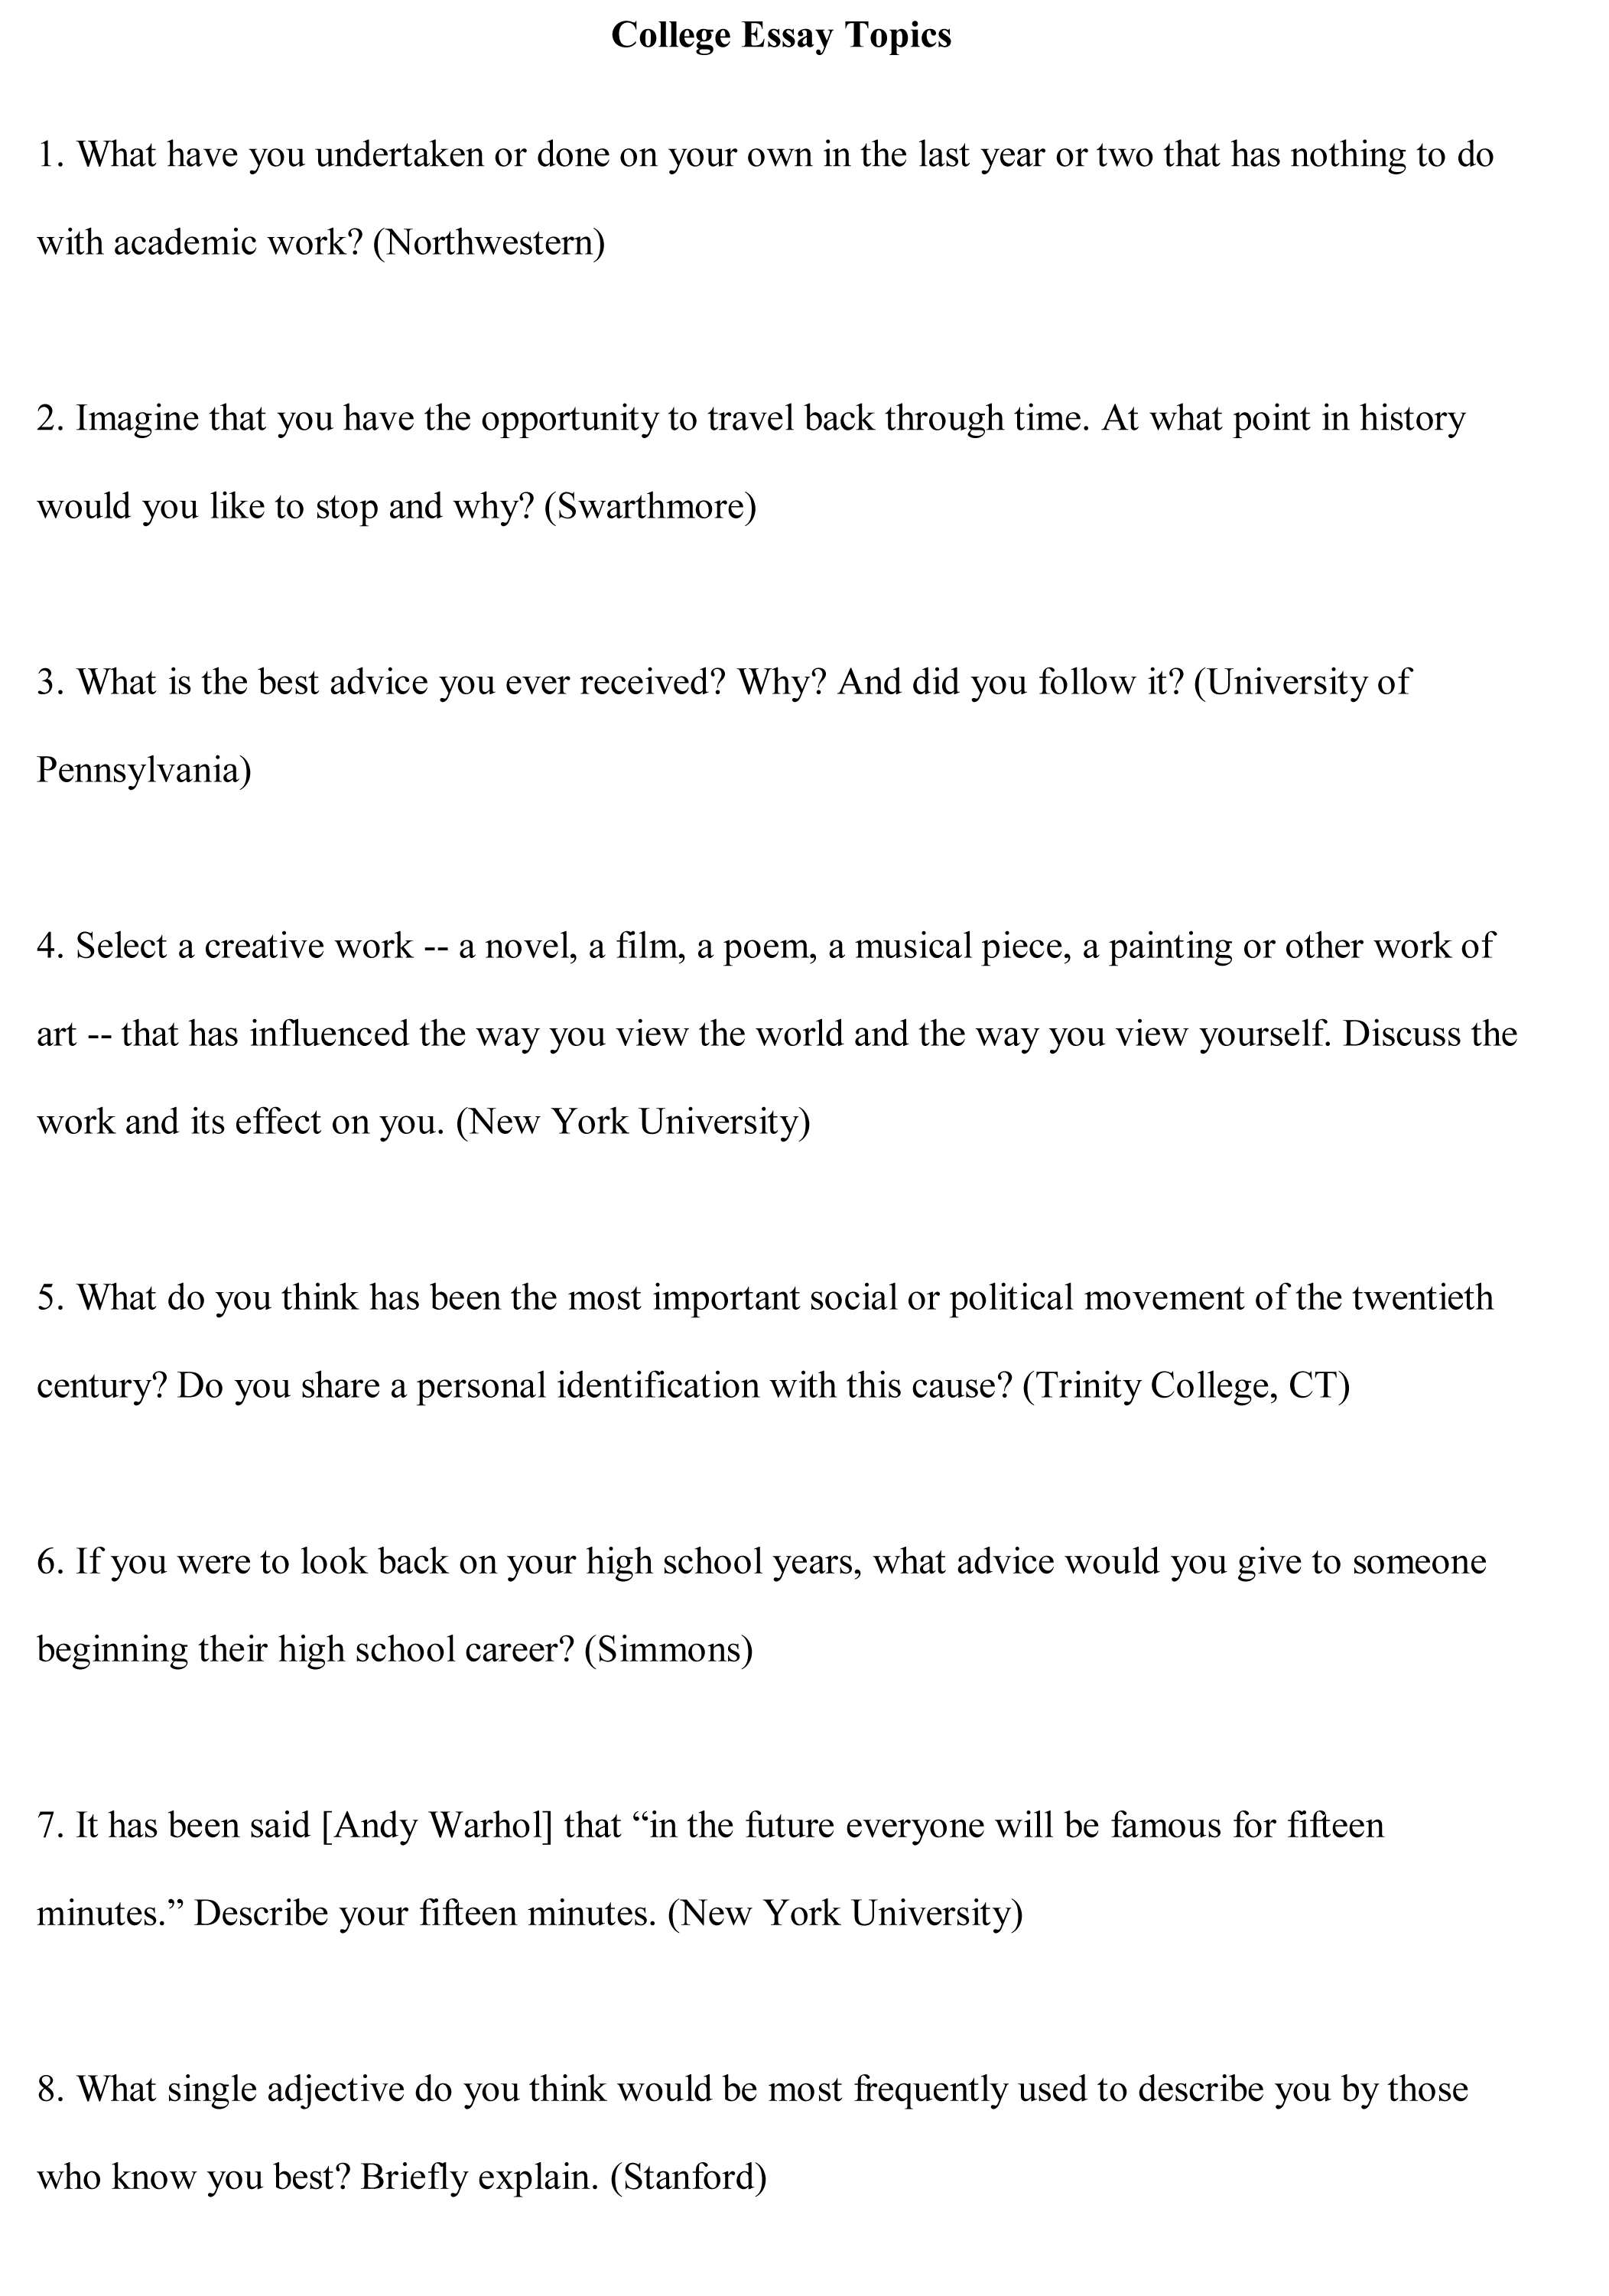 009 College Essay Topics Free Sample1 Prompts Unique Prompt Examples 1 Application Full